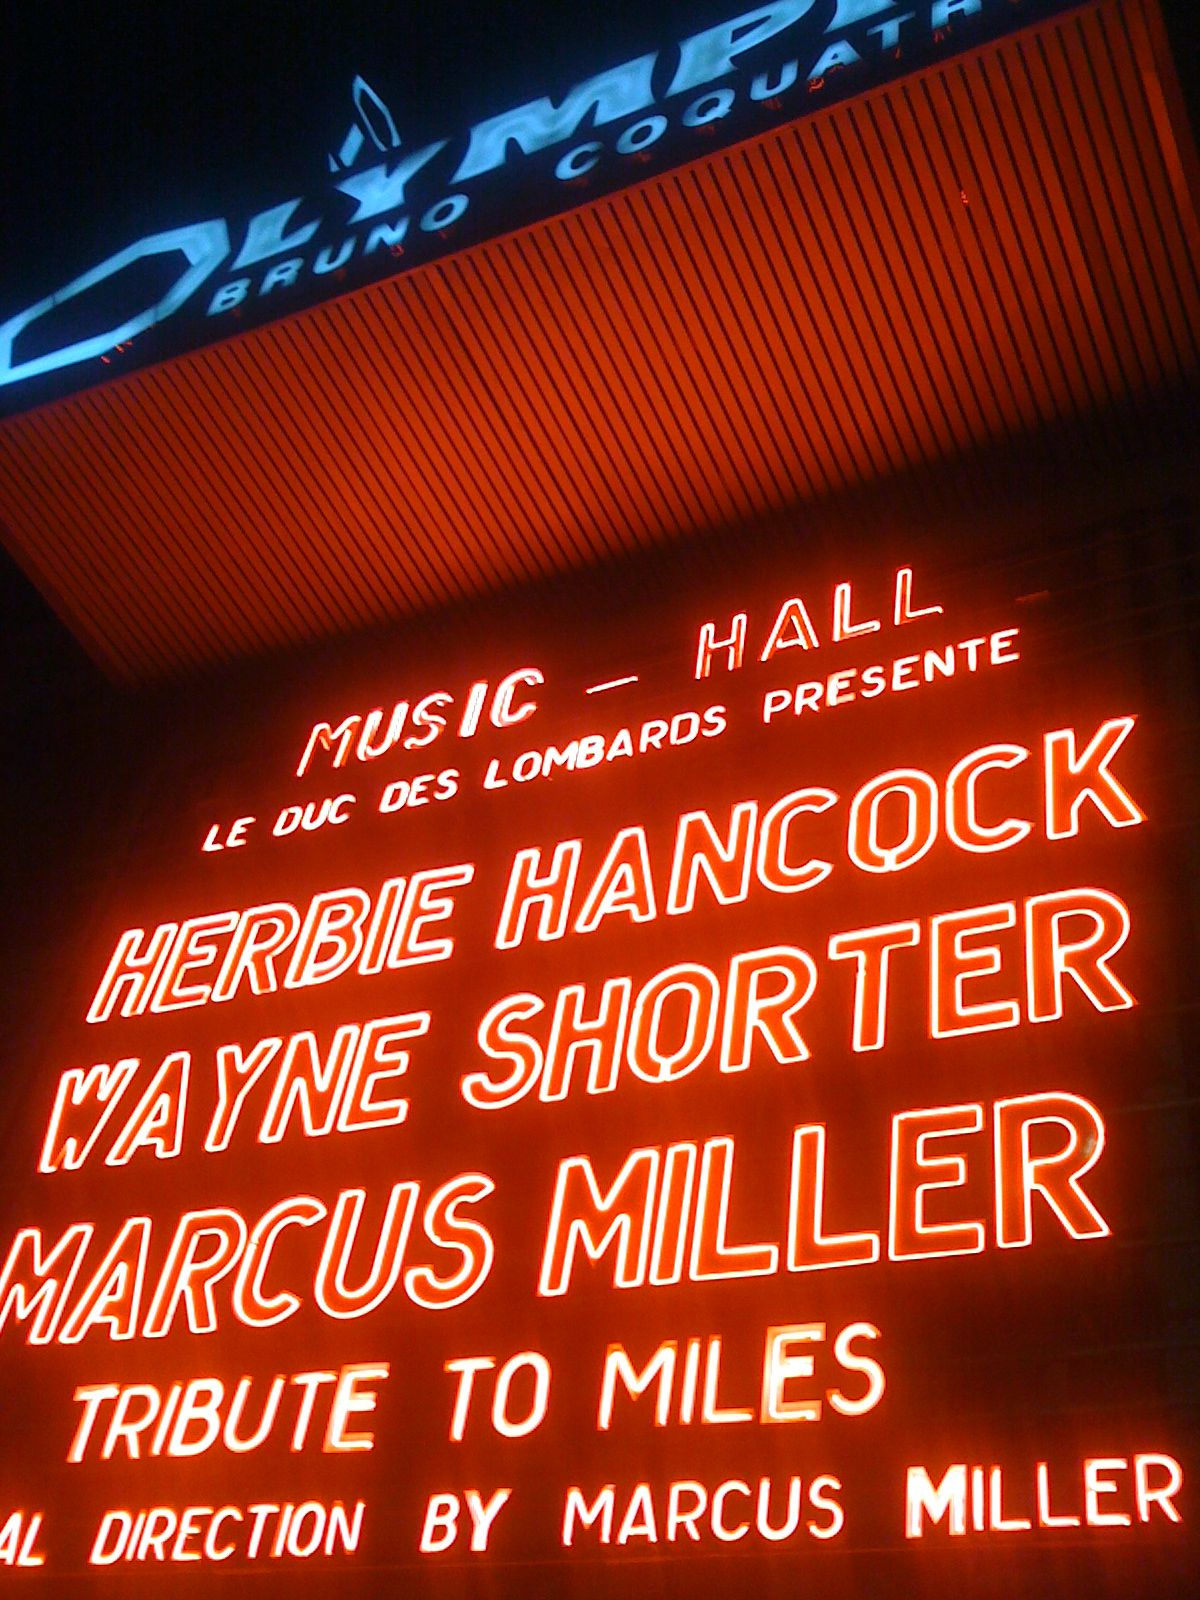 Herbie Hancock Wayne Shorter Marcus Miller At L Olympia Paris Fleurto Fleur Touchard Wayne Shorter Tribute Lombard